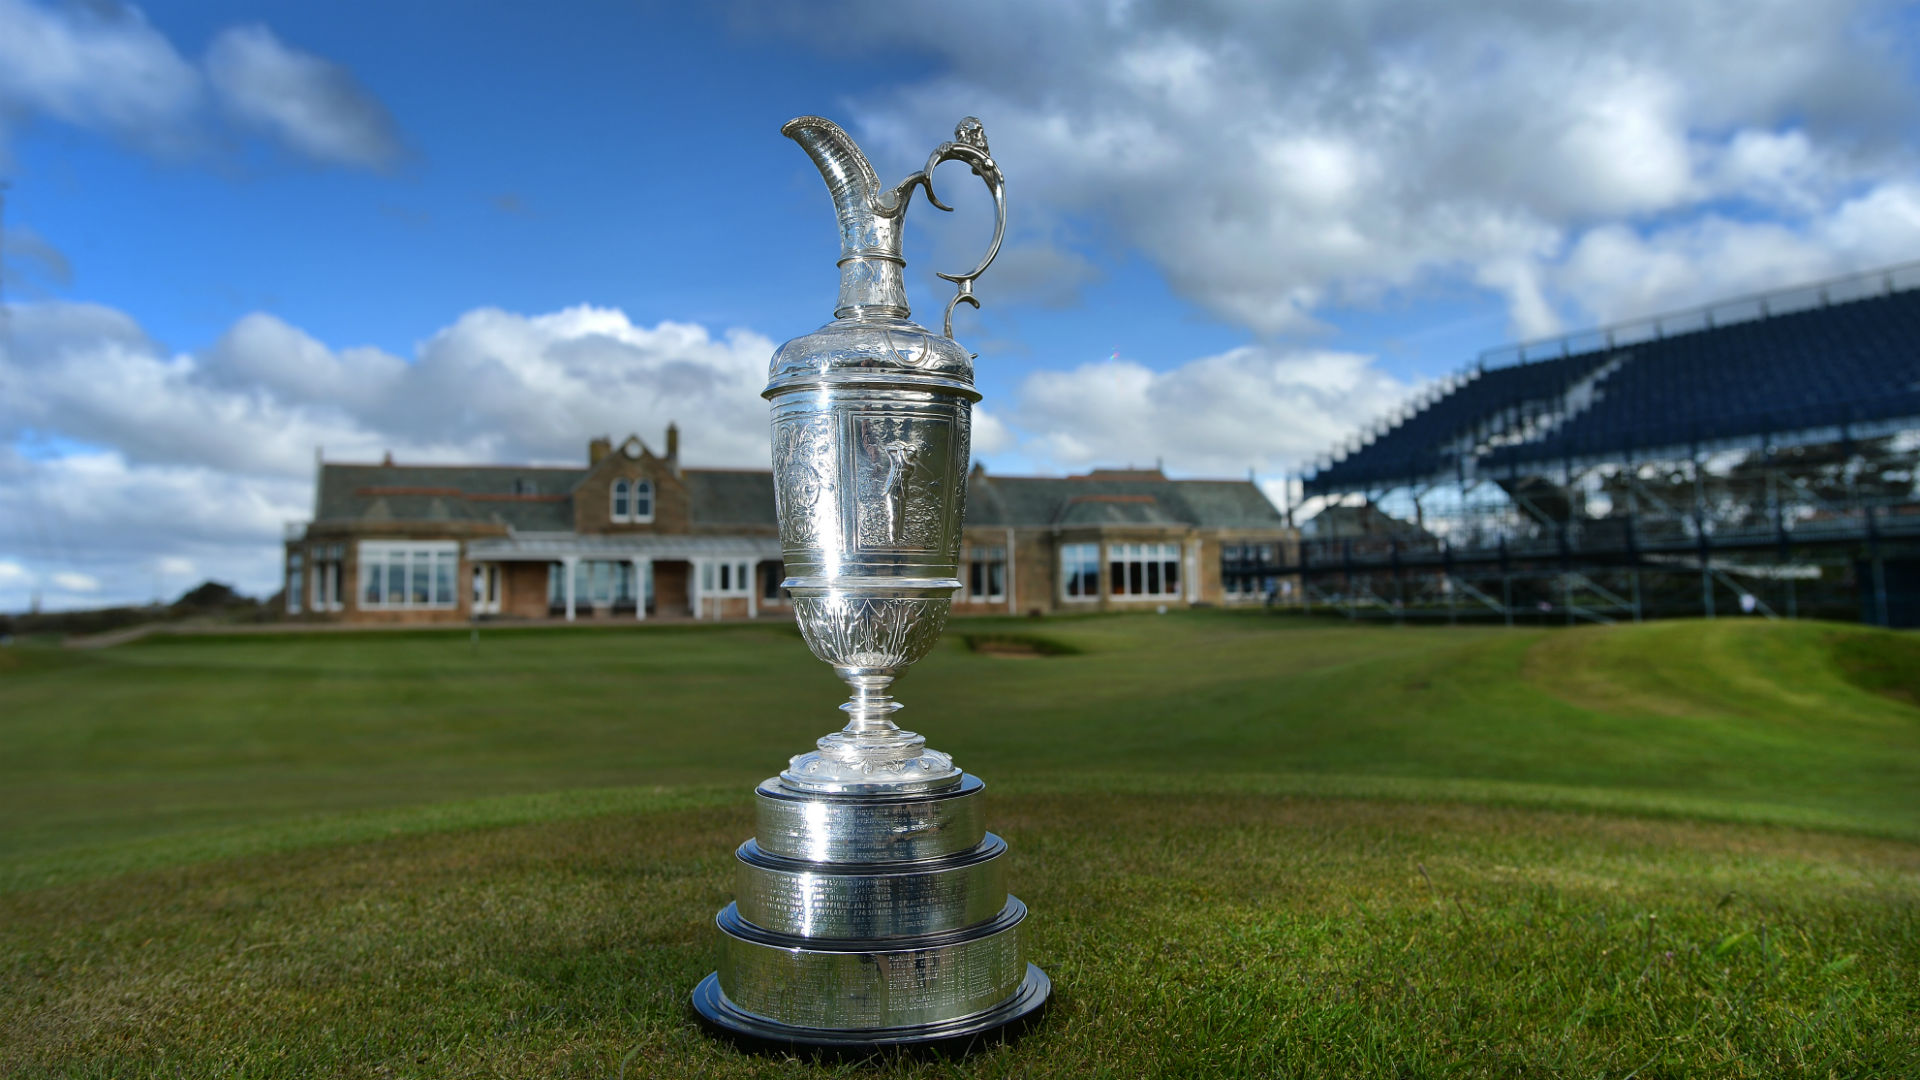 Coronavirus: The Open at Royal St George's cancelled